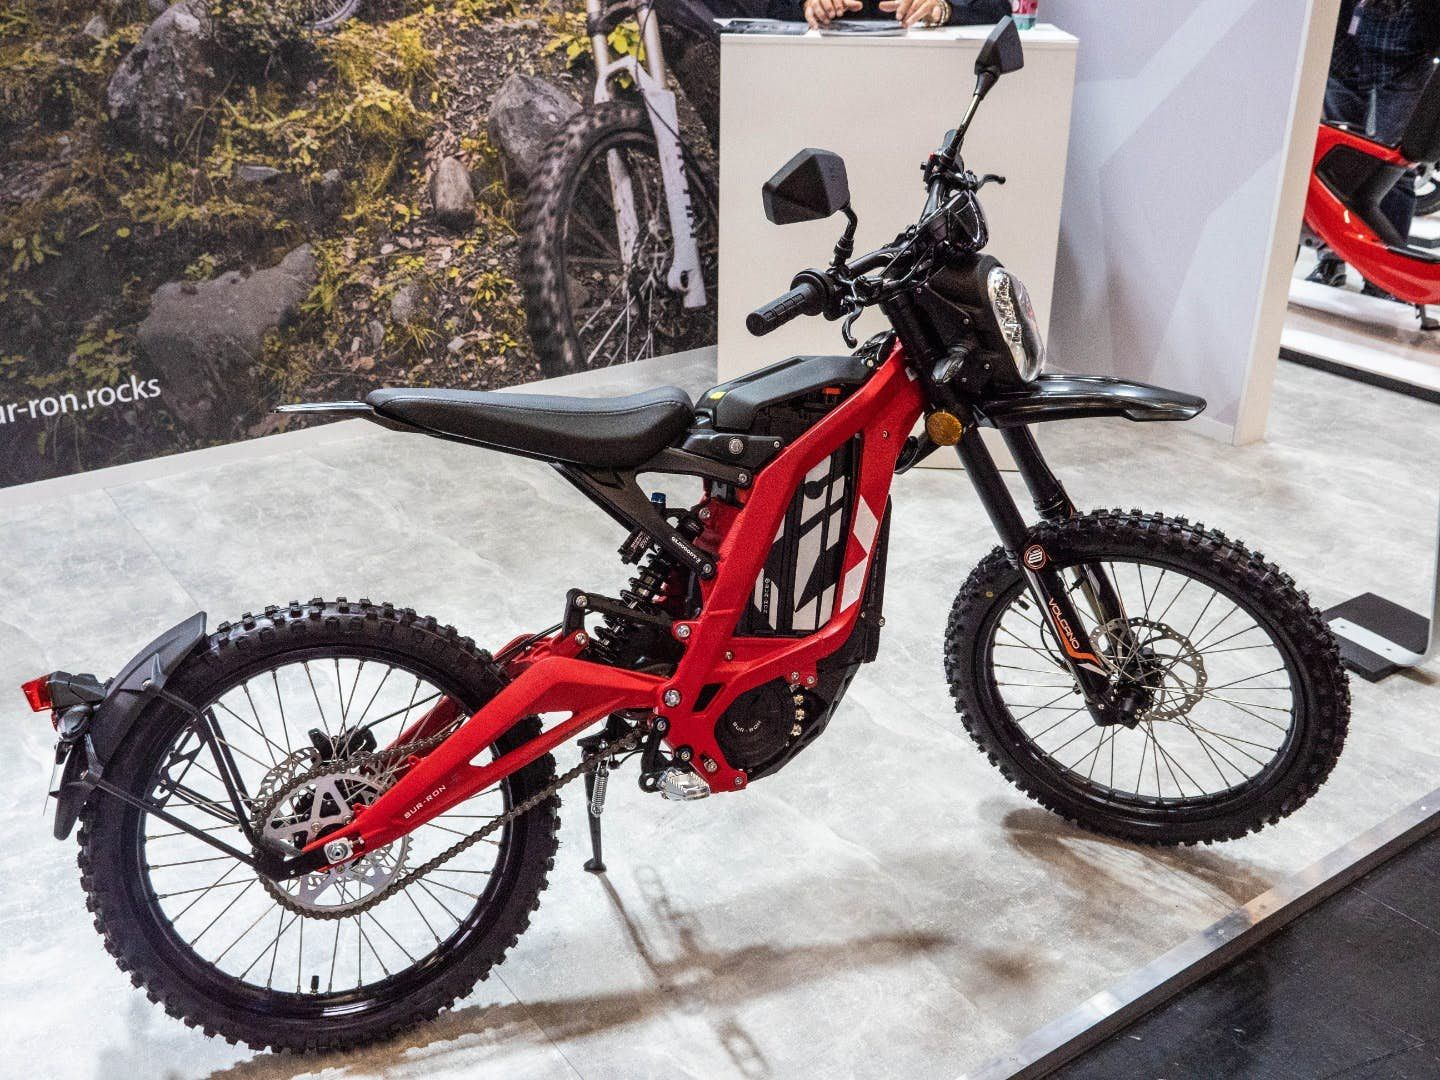 Gallery The Best Of Germany S Biggest Motorcycle Expo Intermot 2018 Motorcycle Expo Motorcycle Expo